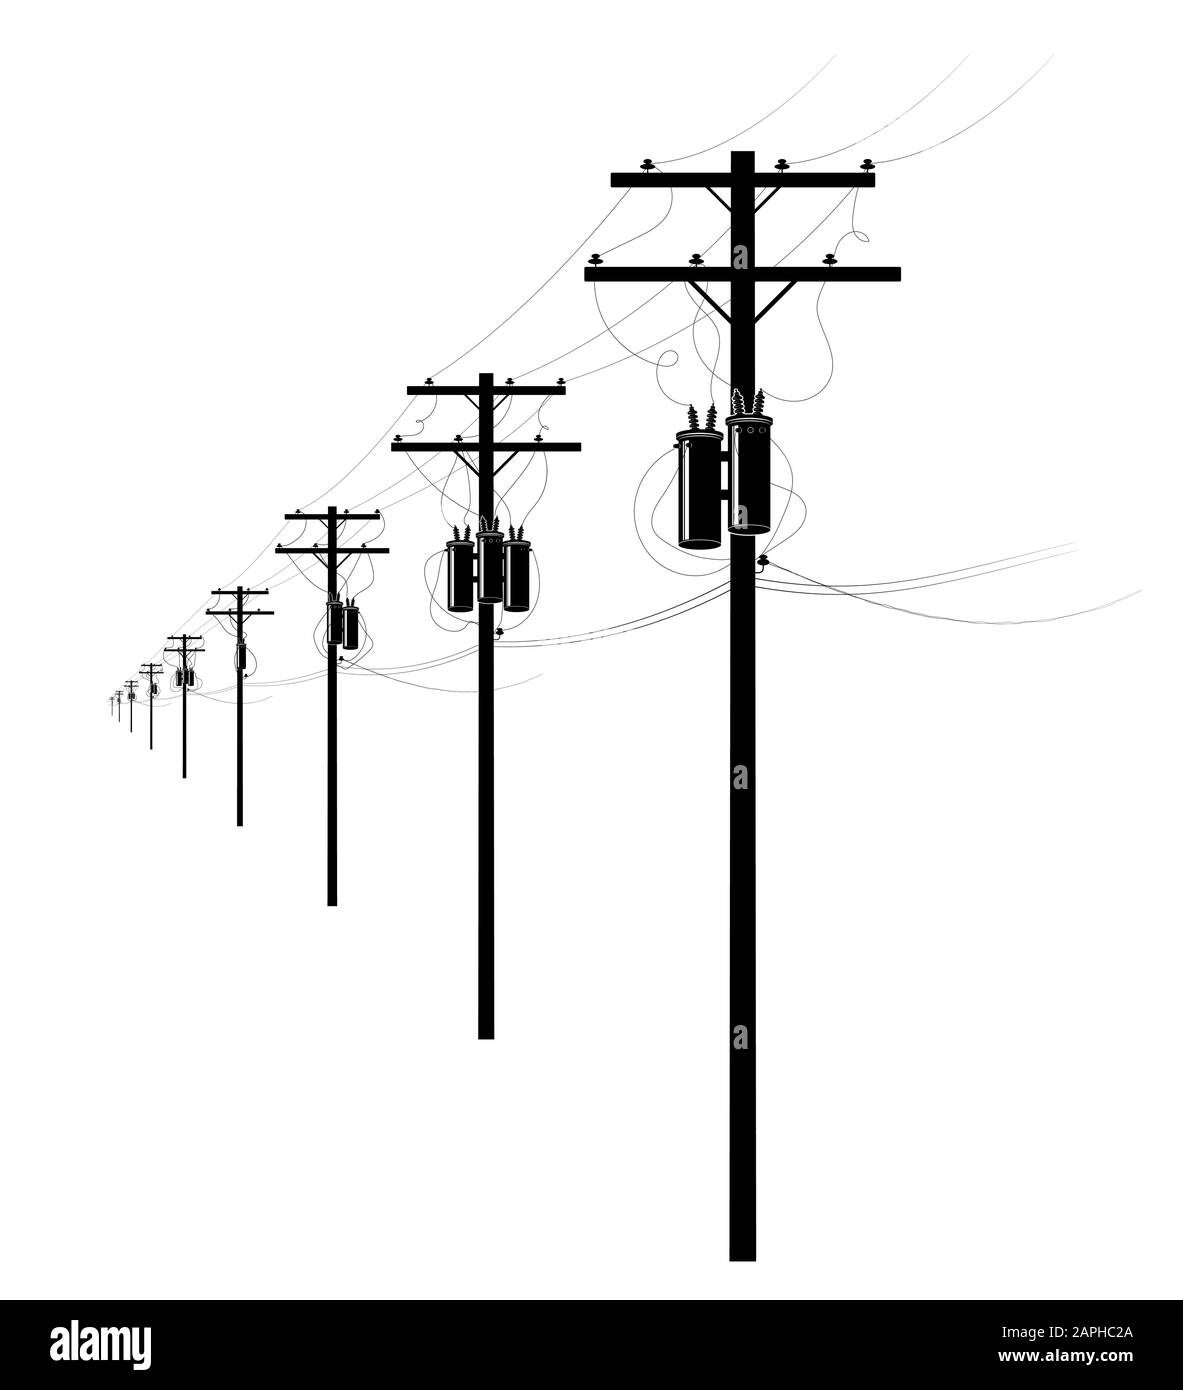 sky phone line wiring diagram energy and technology electrical post by the road with power line  energy and technology electrical post